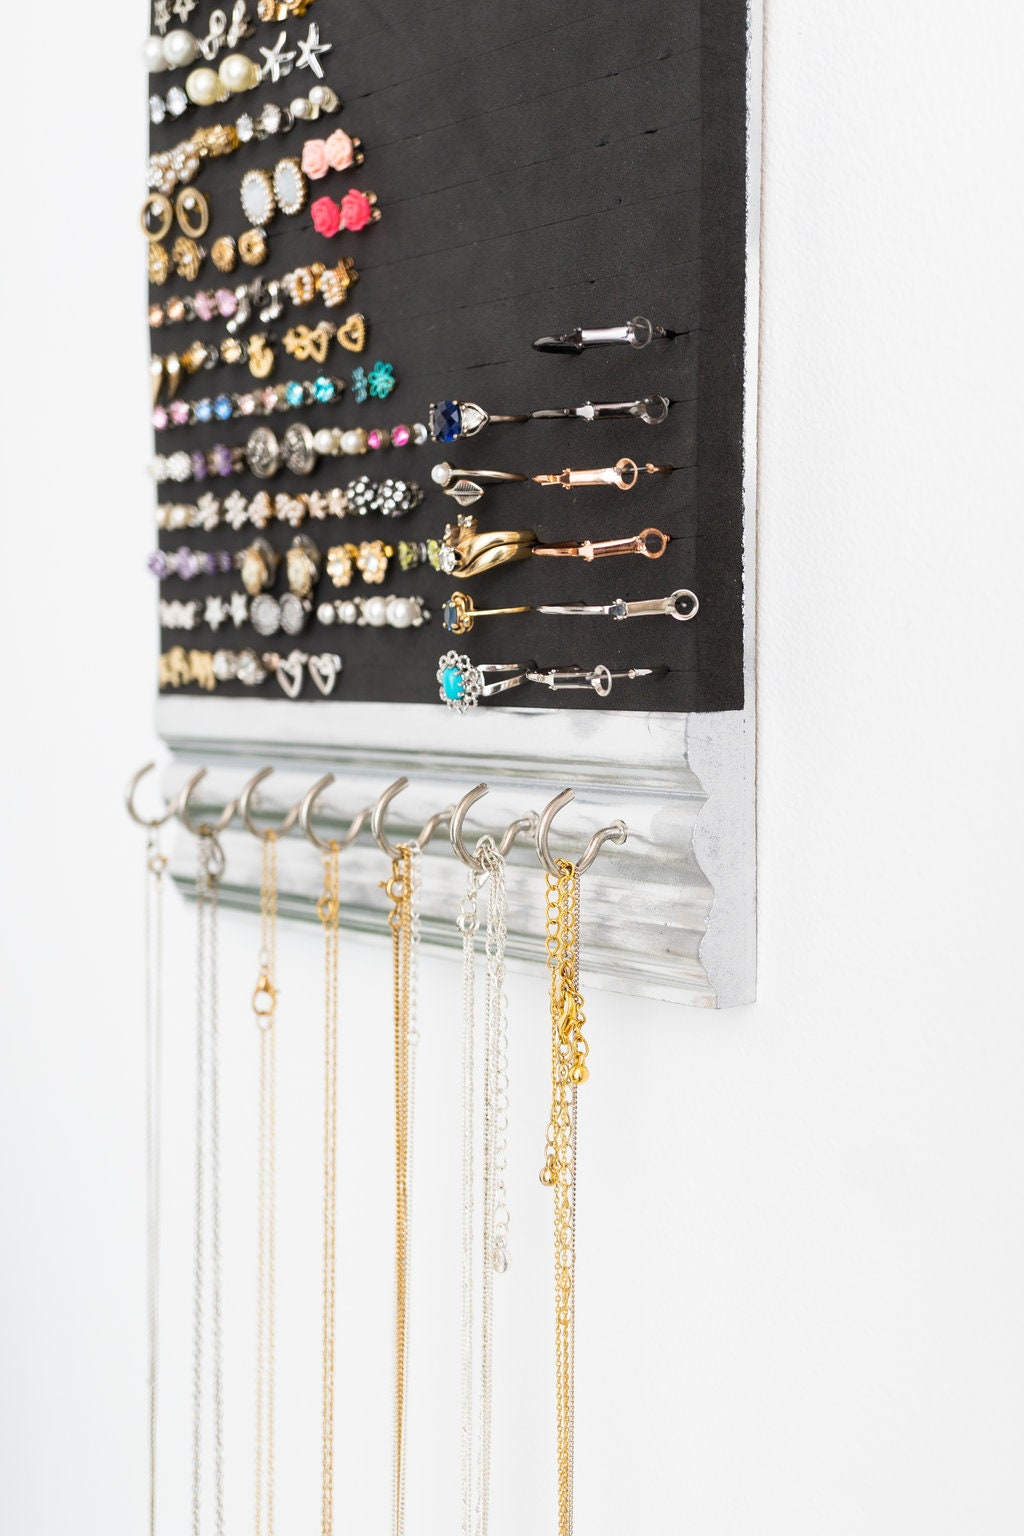 Hanging Jewelry Organizer - Silver Molding Frame - Necklace - Ring ...